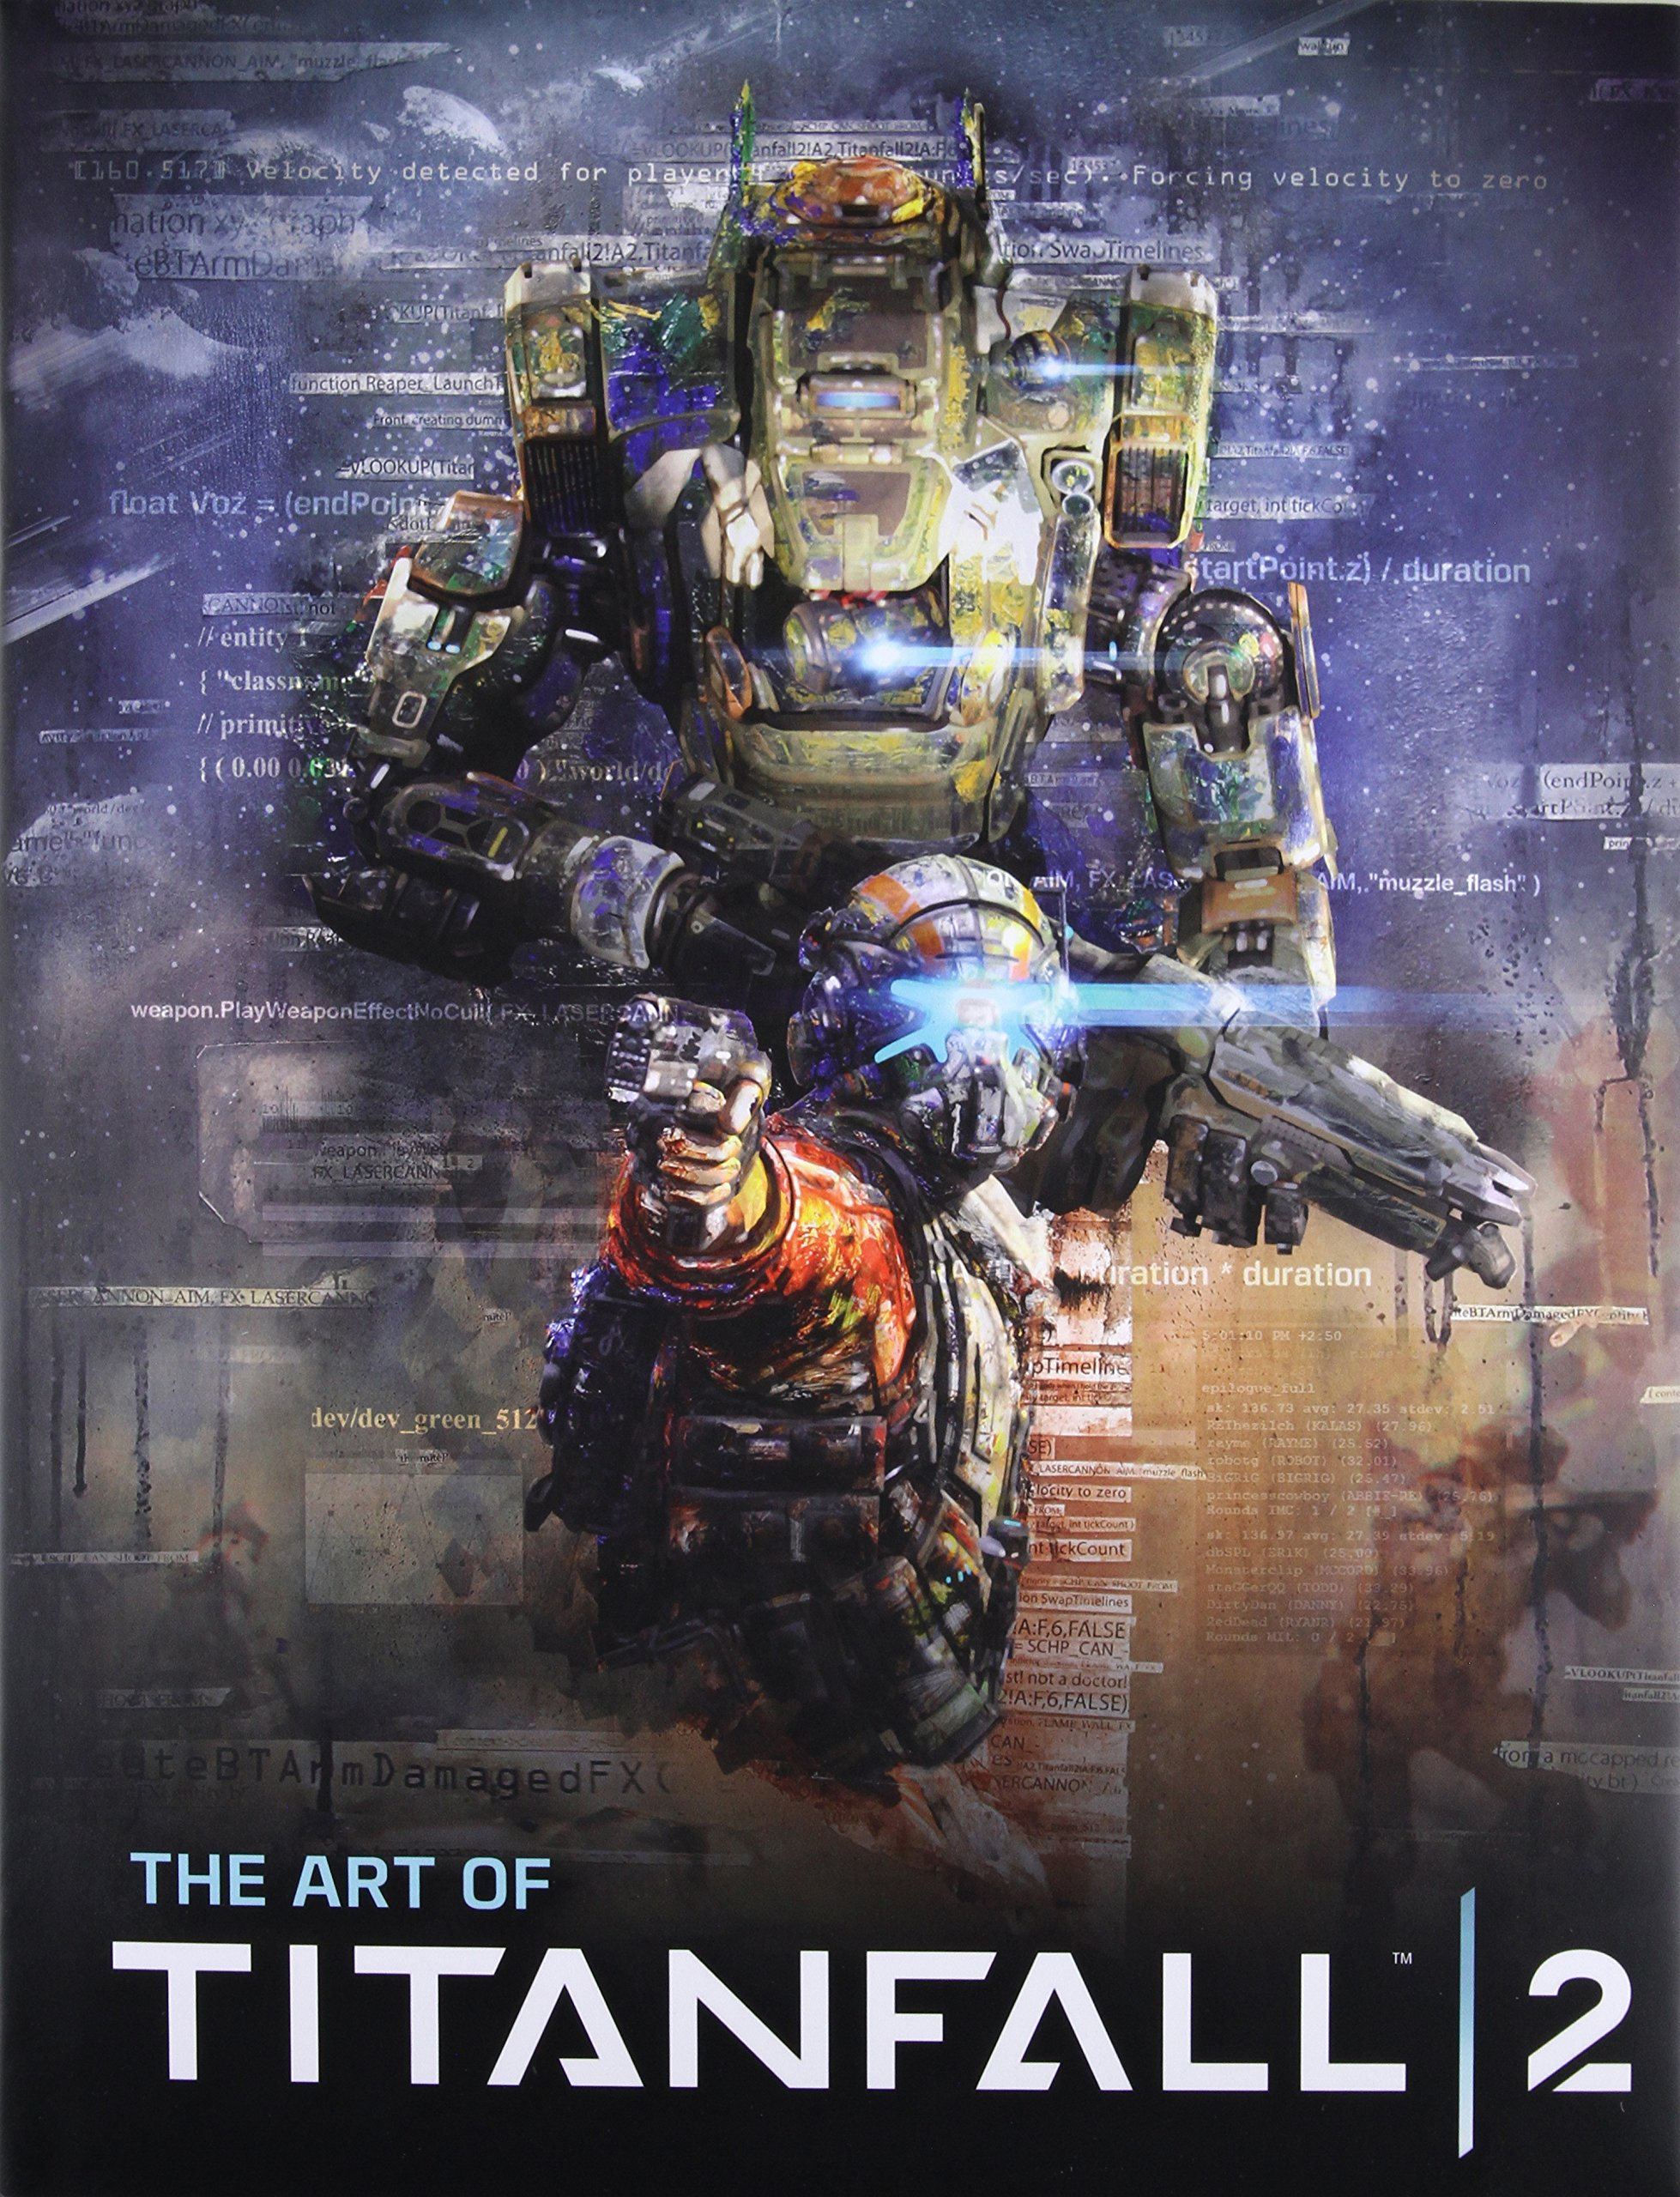 amazon com the art of titanfall 2 9781785653698 andy mcvittie books